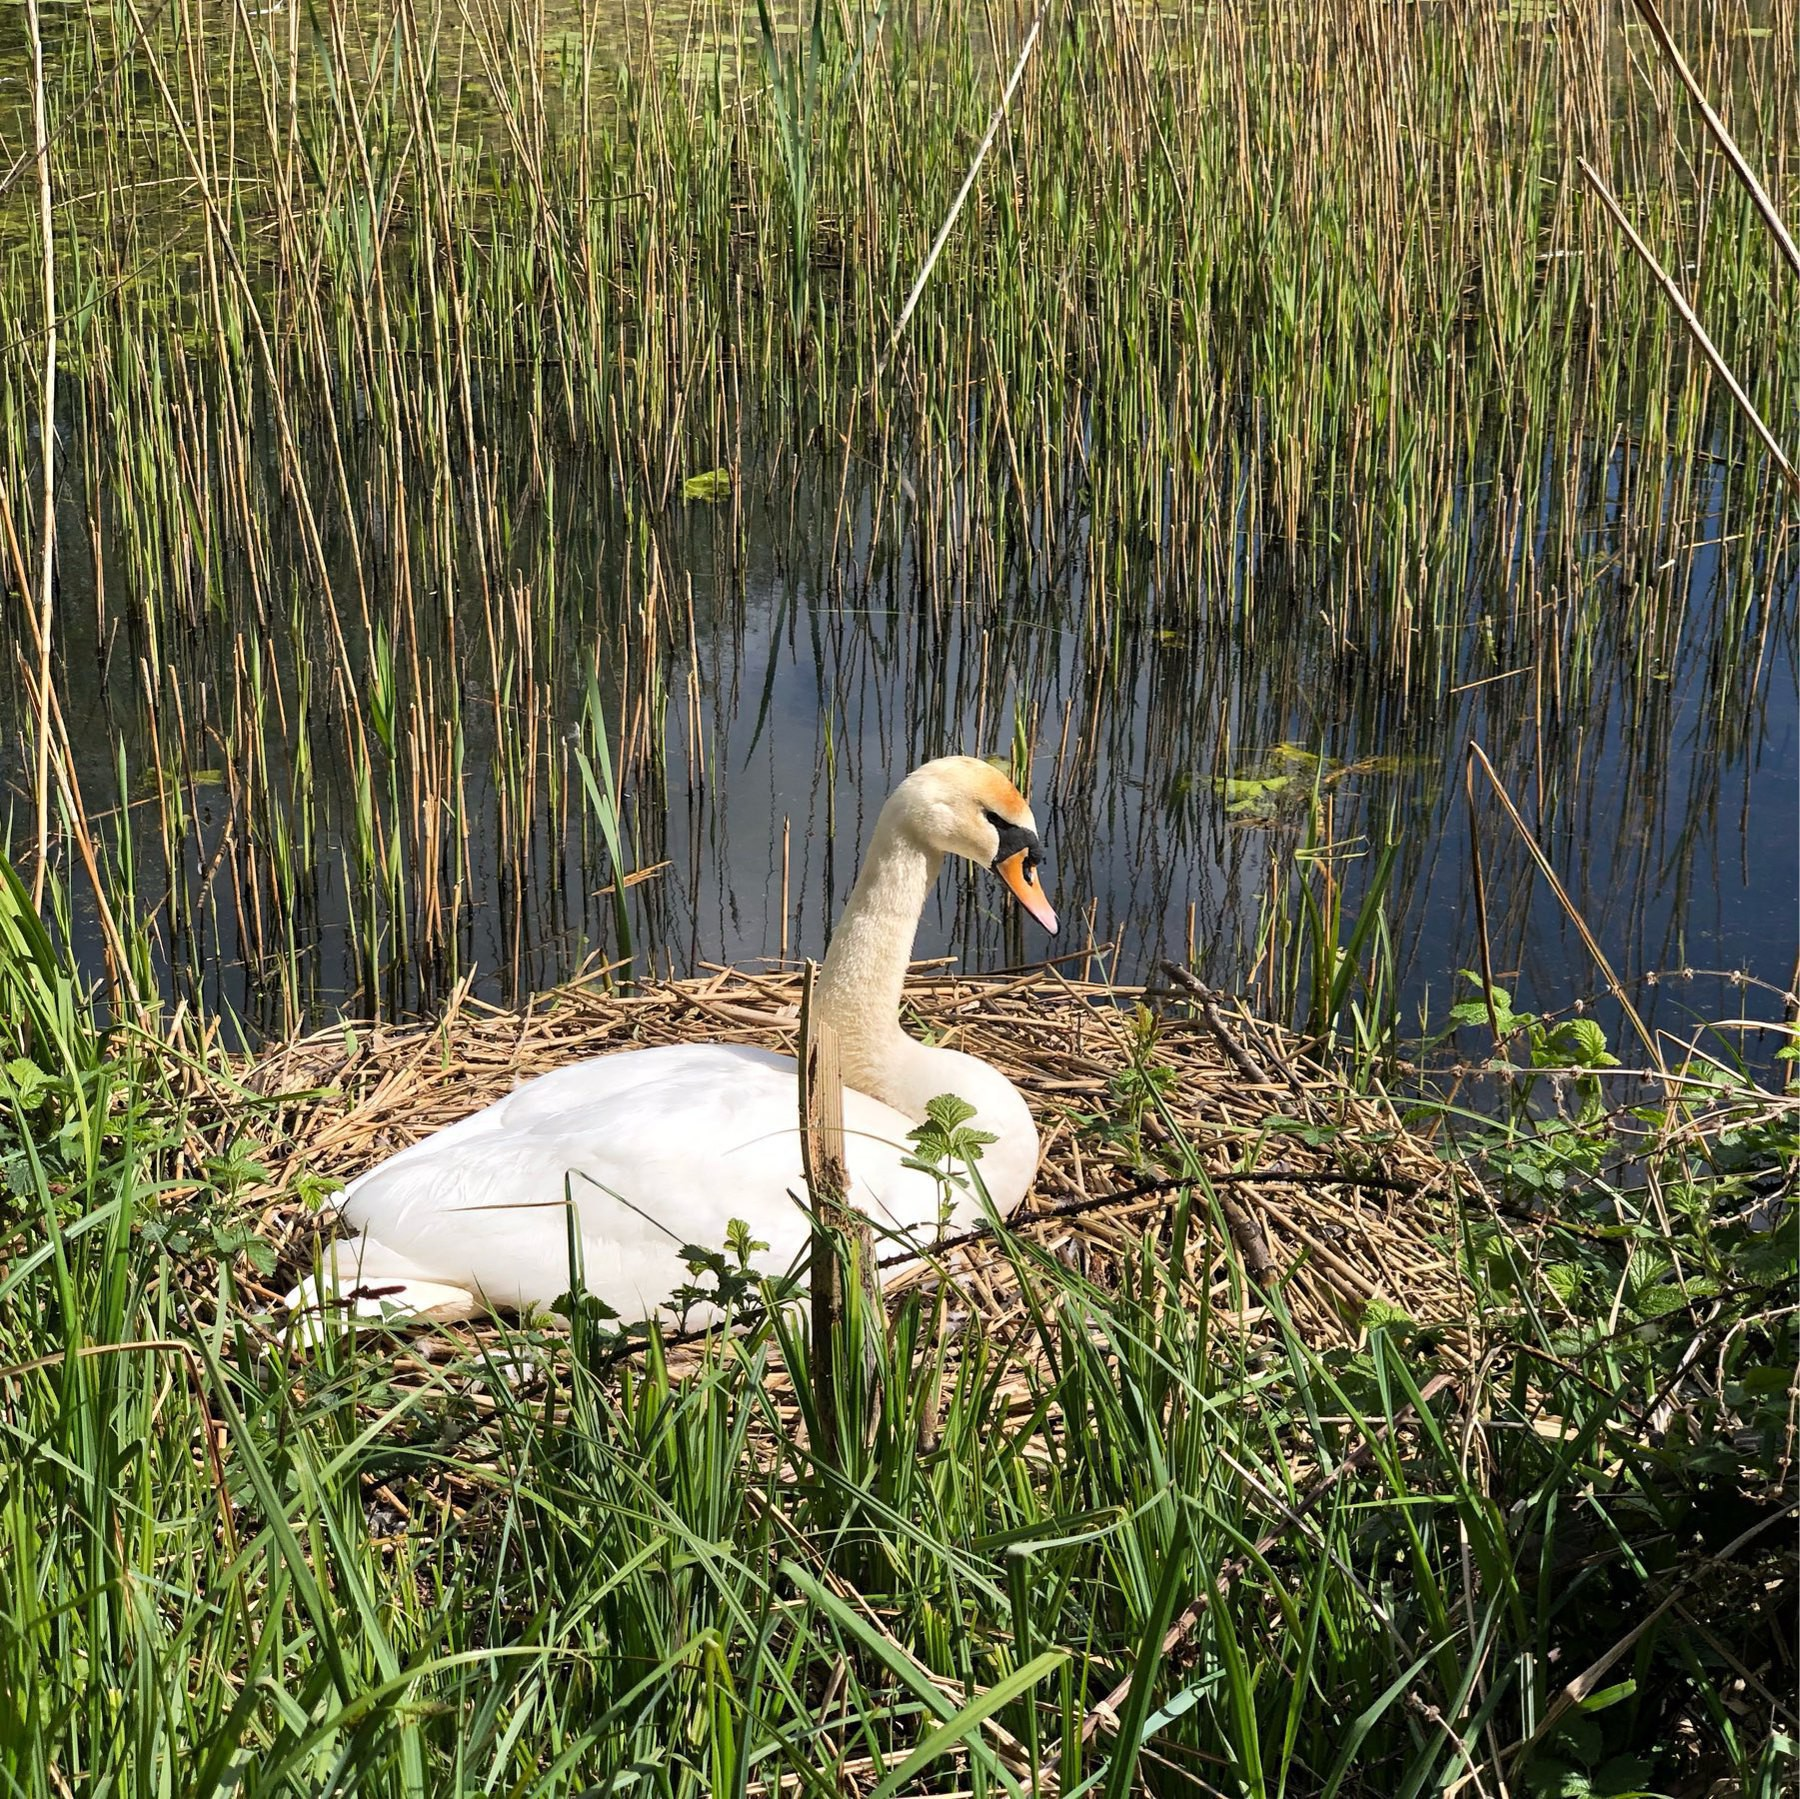 Nesting swan at Woods Mill, West Sussex.